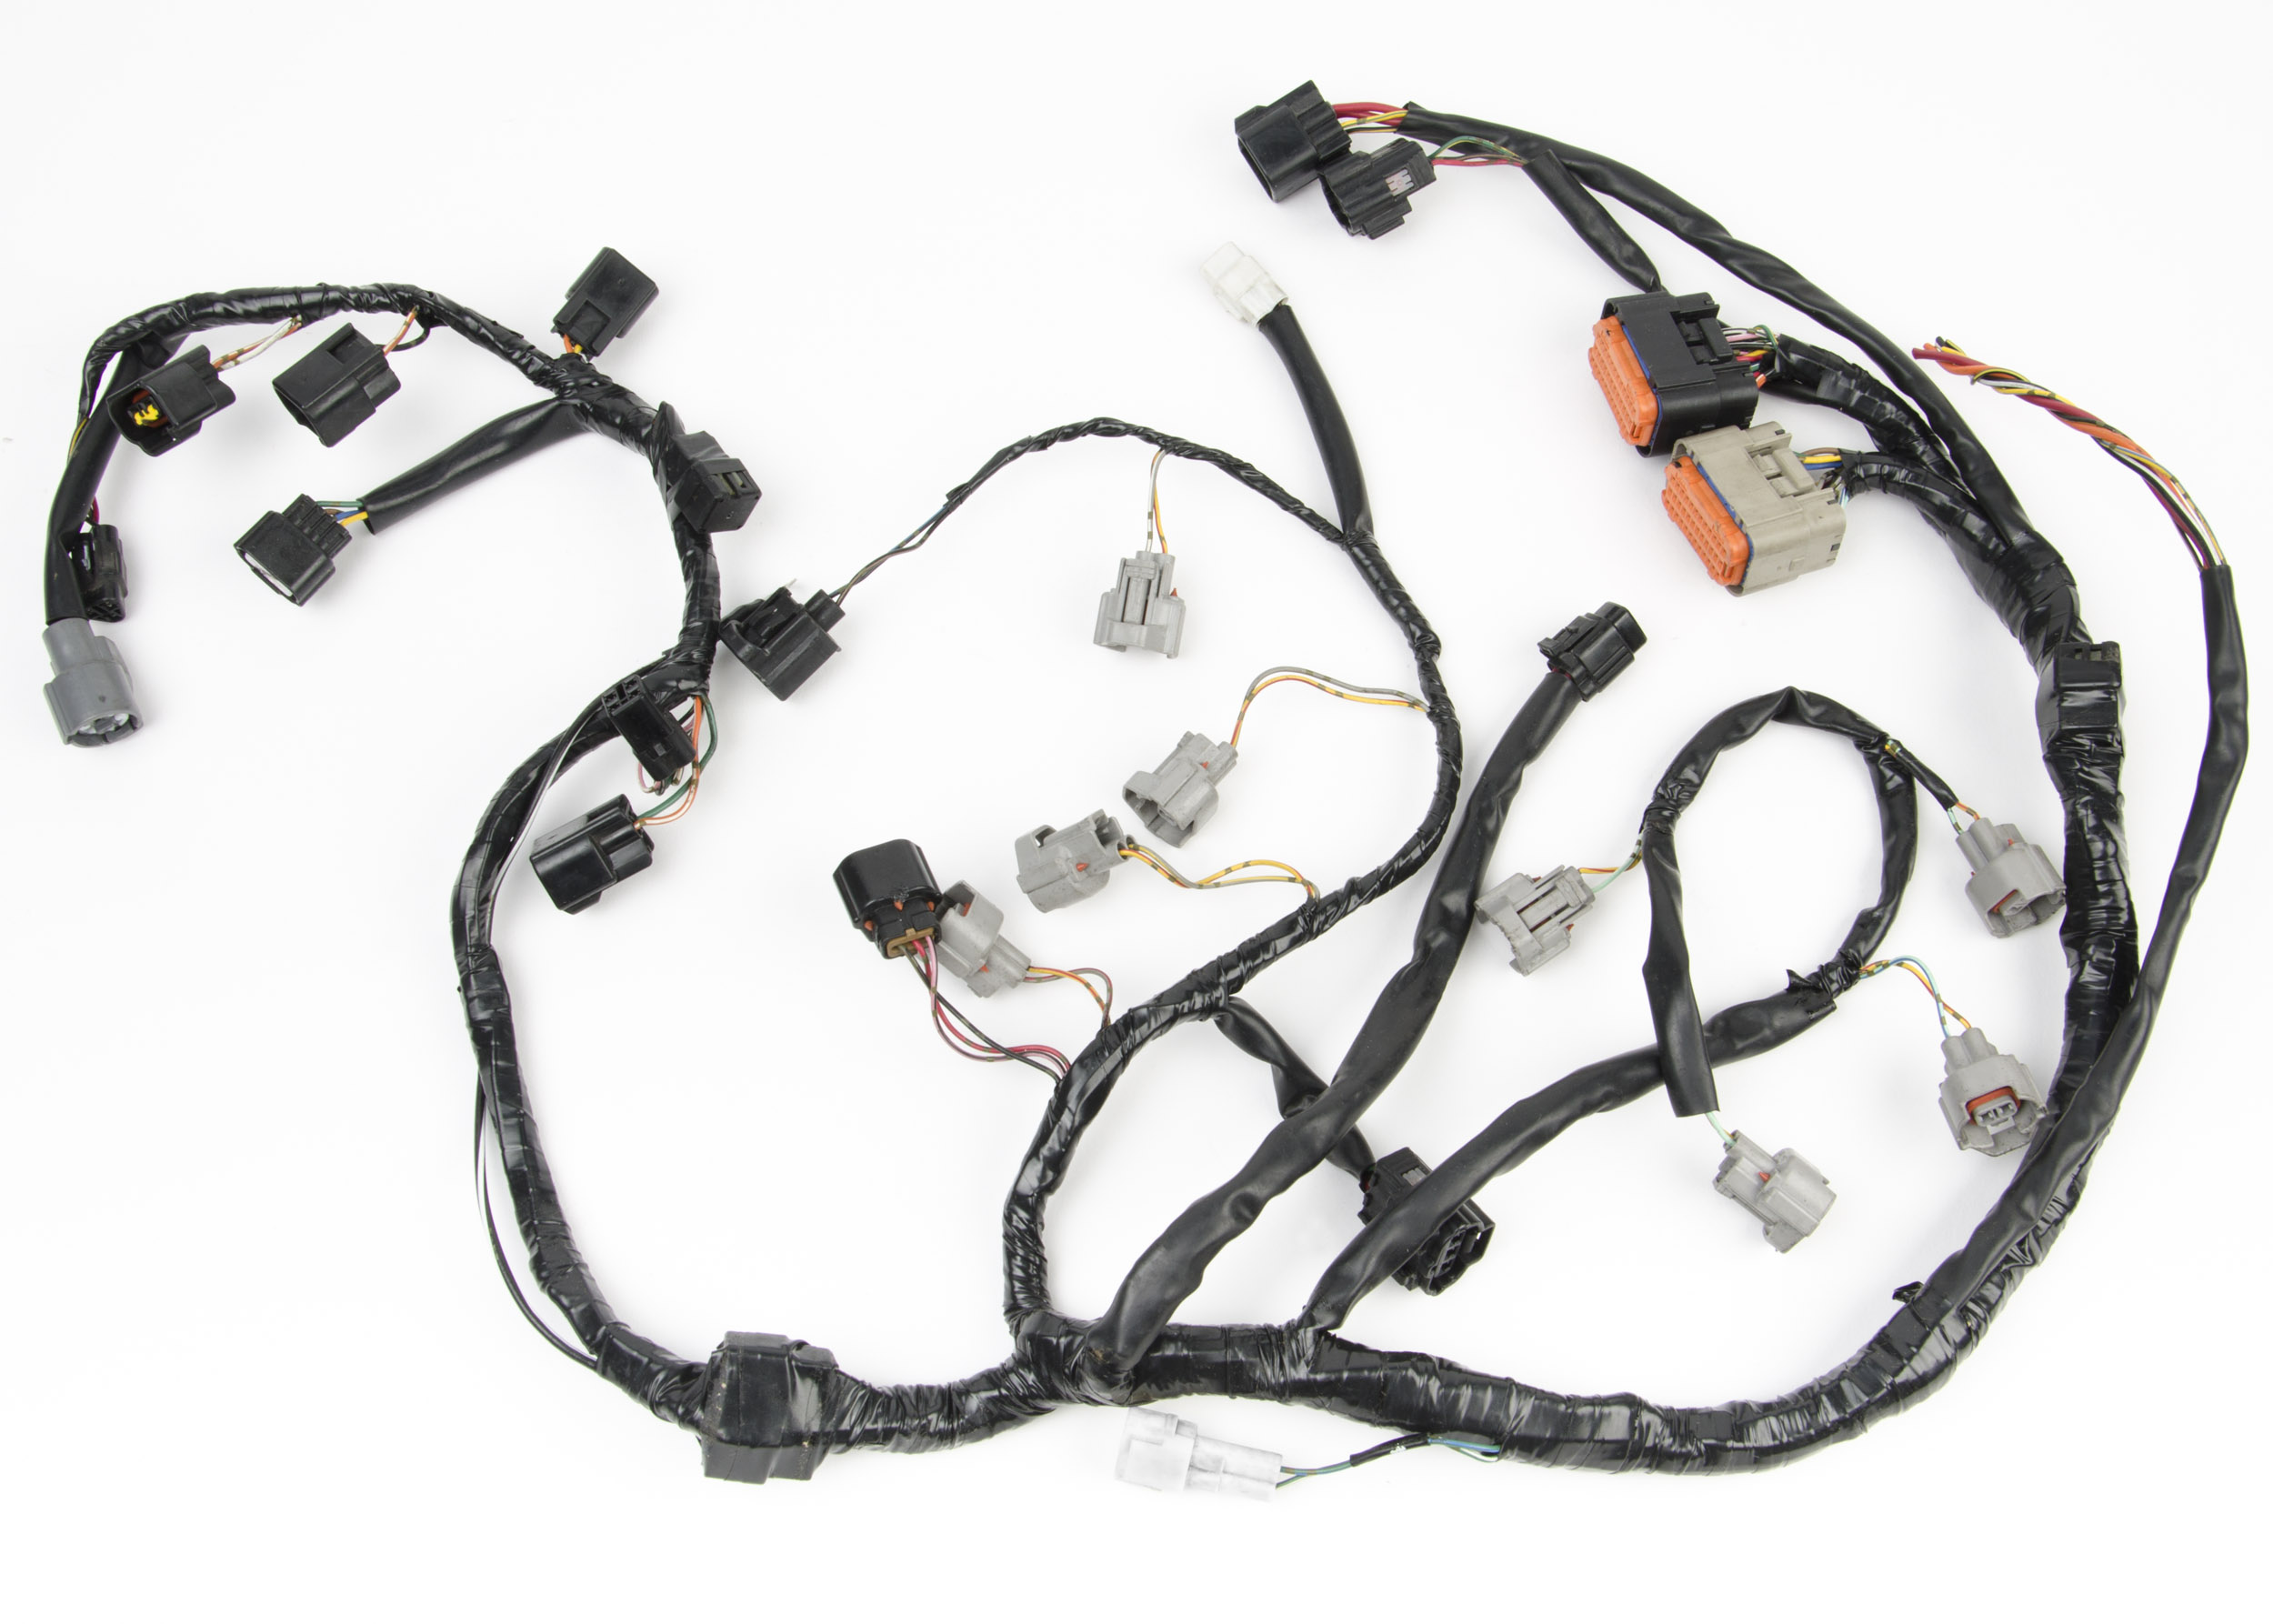 Mazda 3 Headlight Wiring Harness